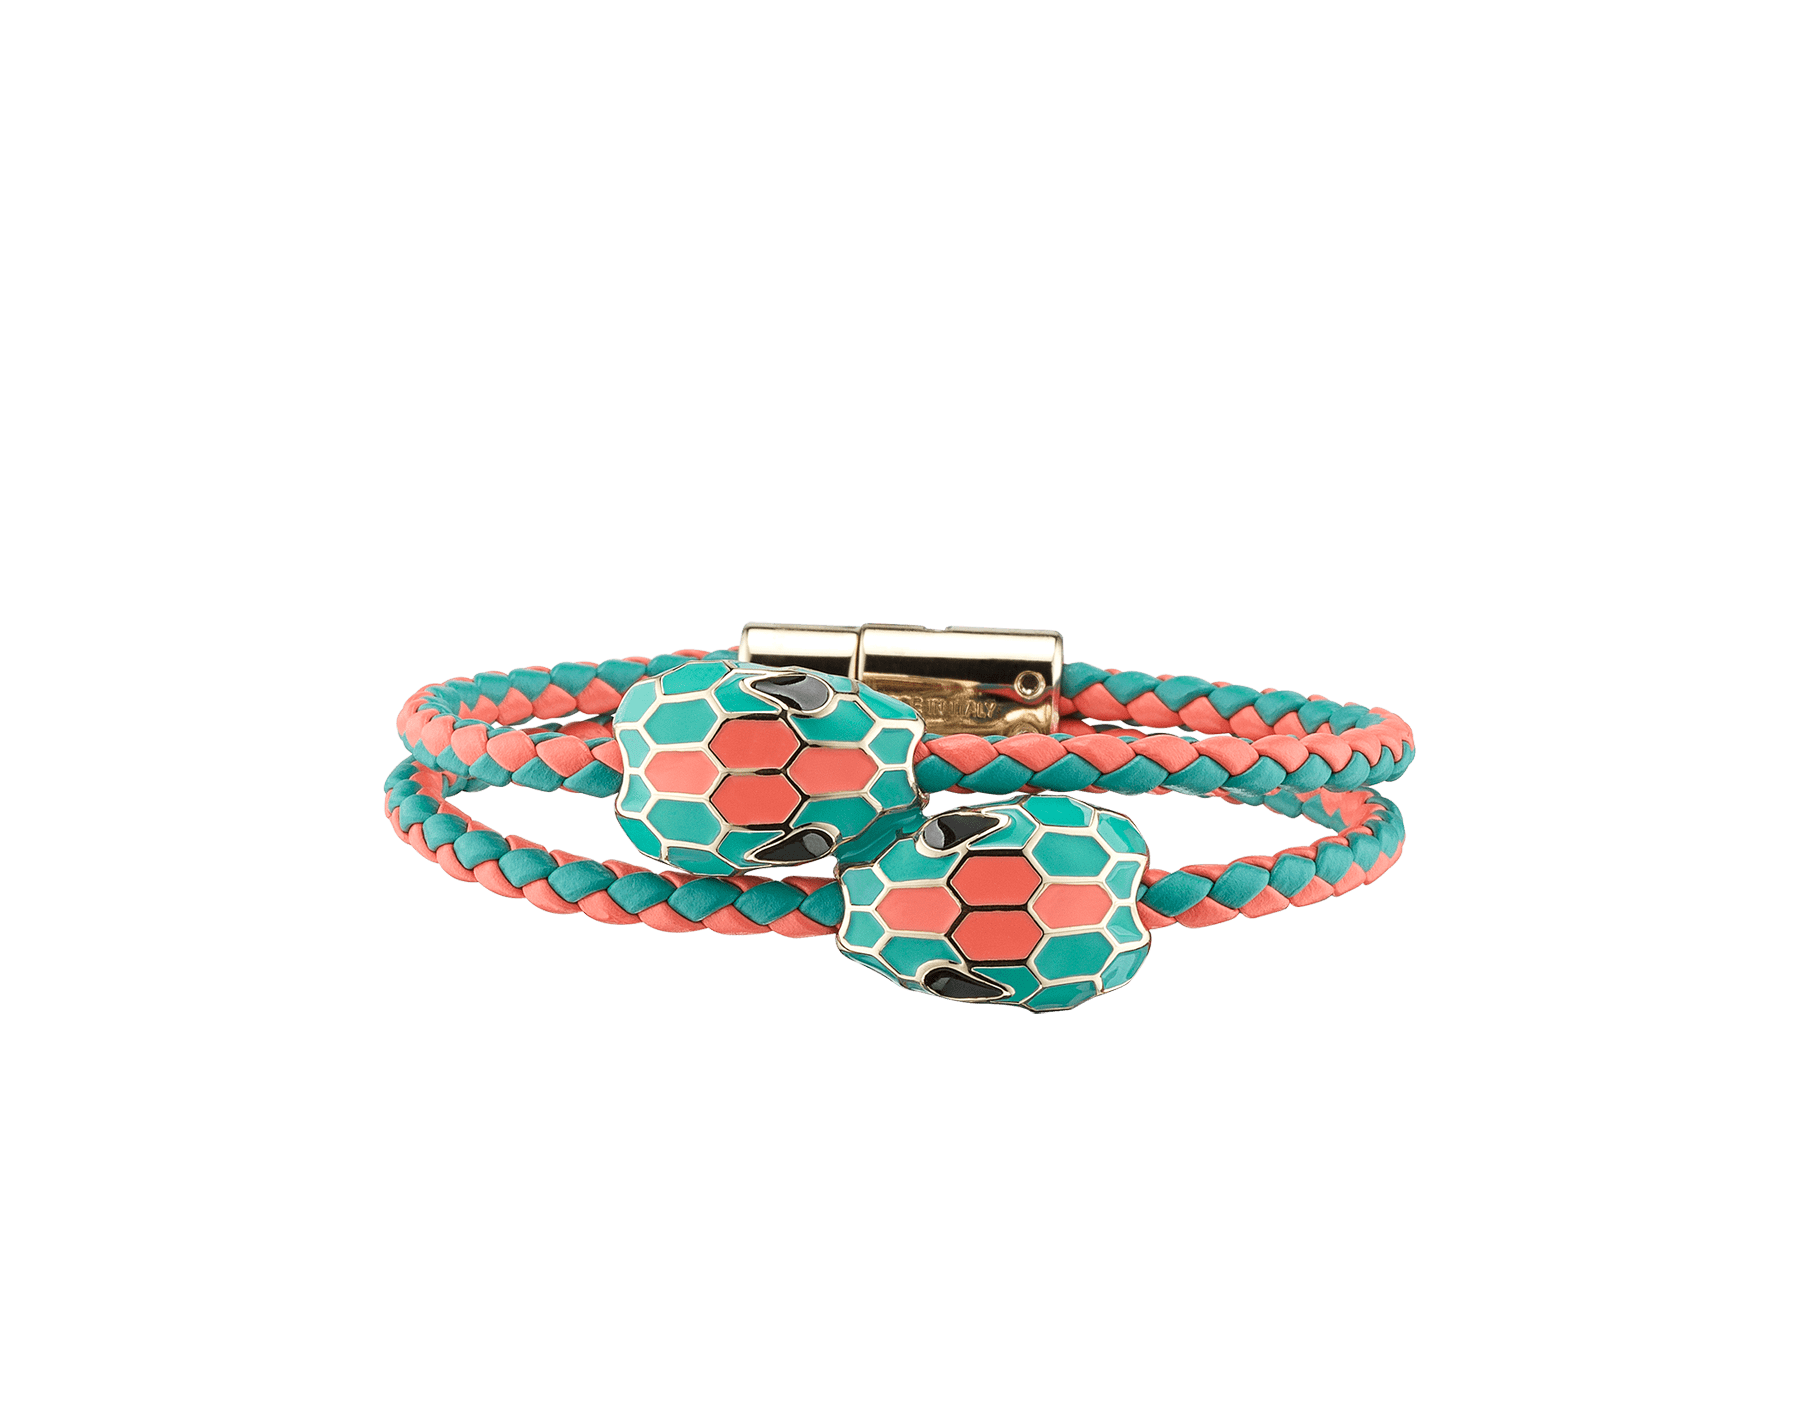 Serpenti Forever double braid bracelet in silky coral and arctic jade woven calf leather with a double snakehead décor in arctic jade and silky coral enamel. NewDoubleBraid-WCL-SCAJ image 1